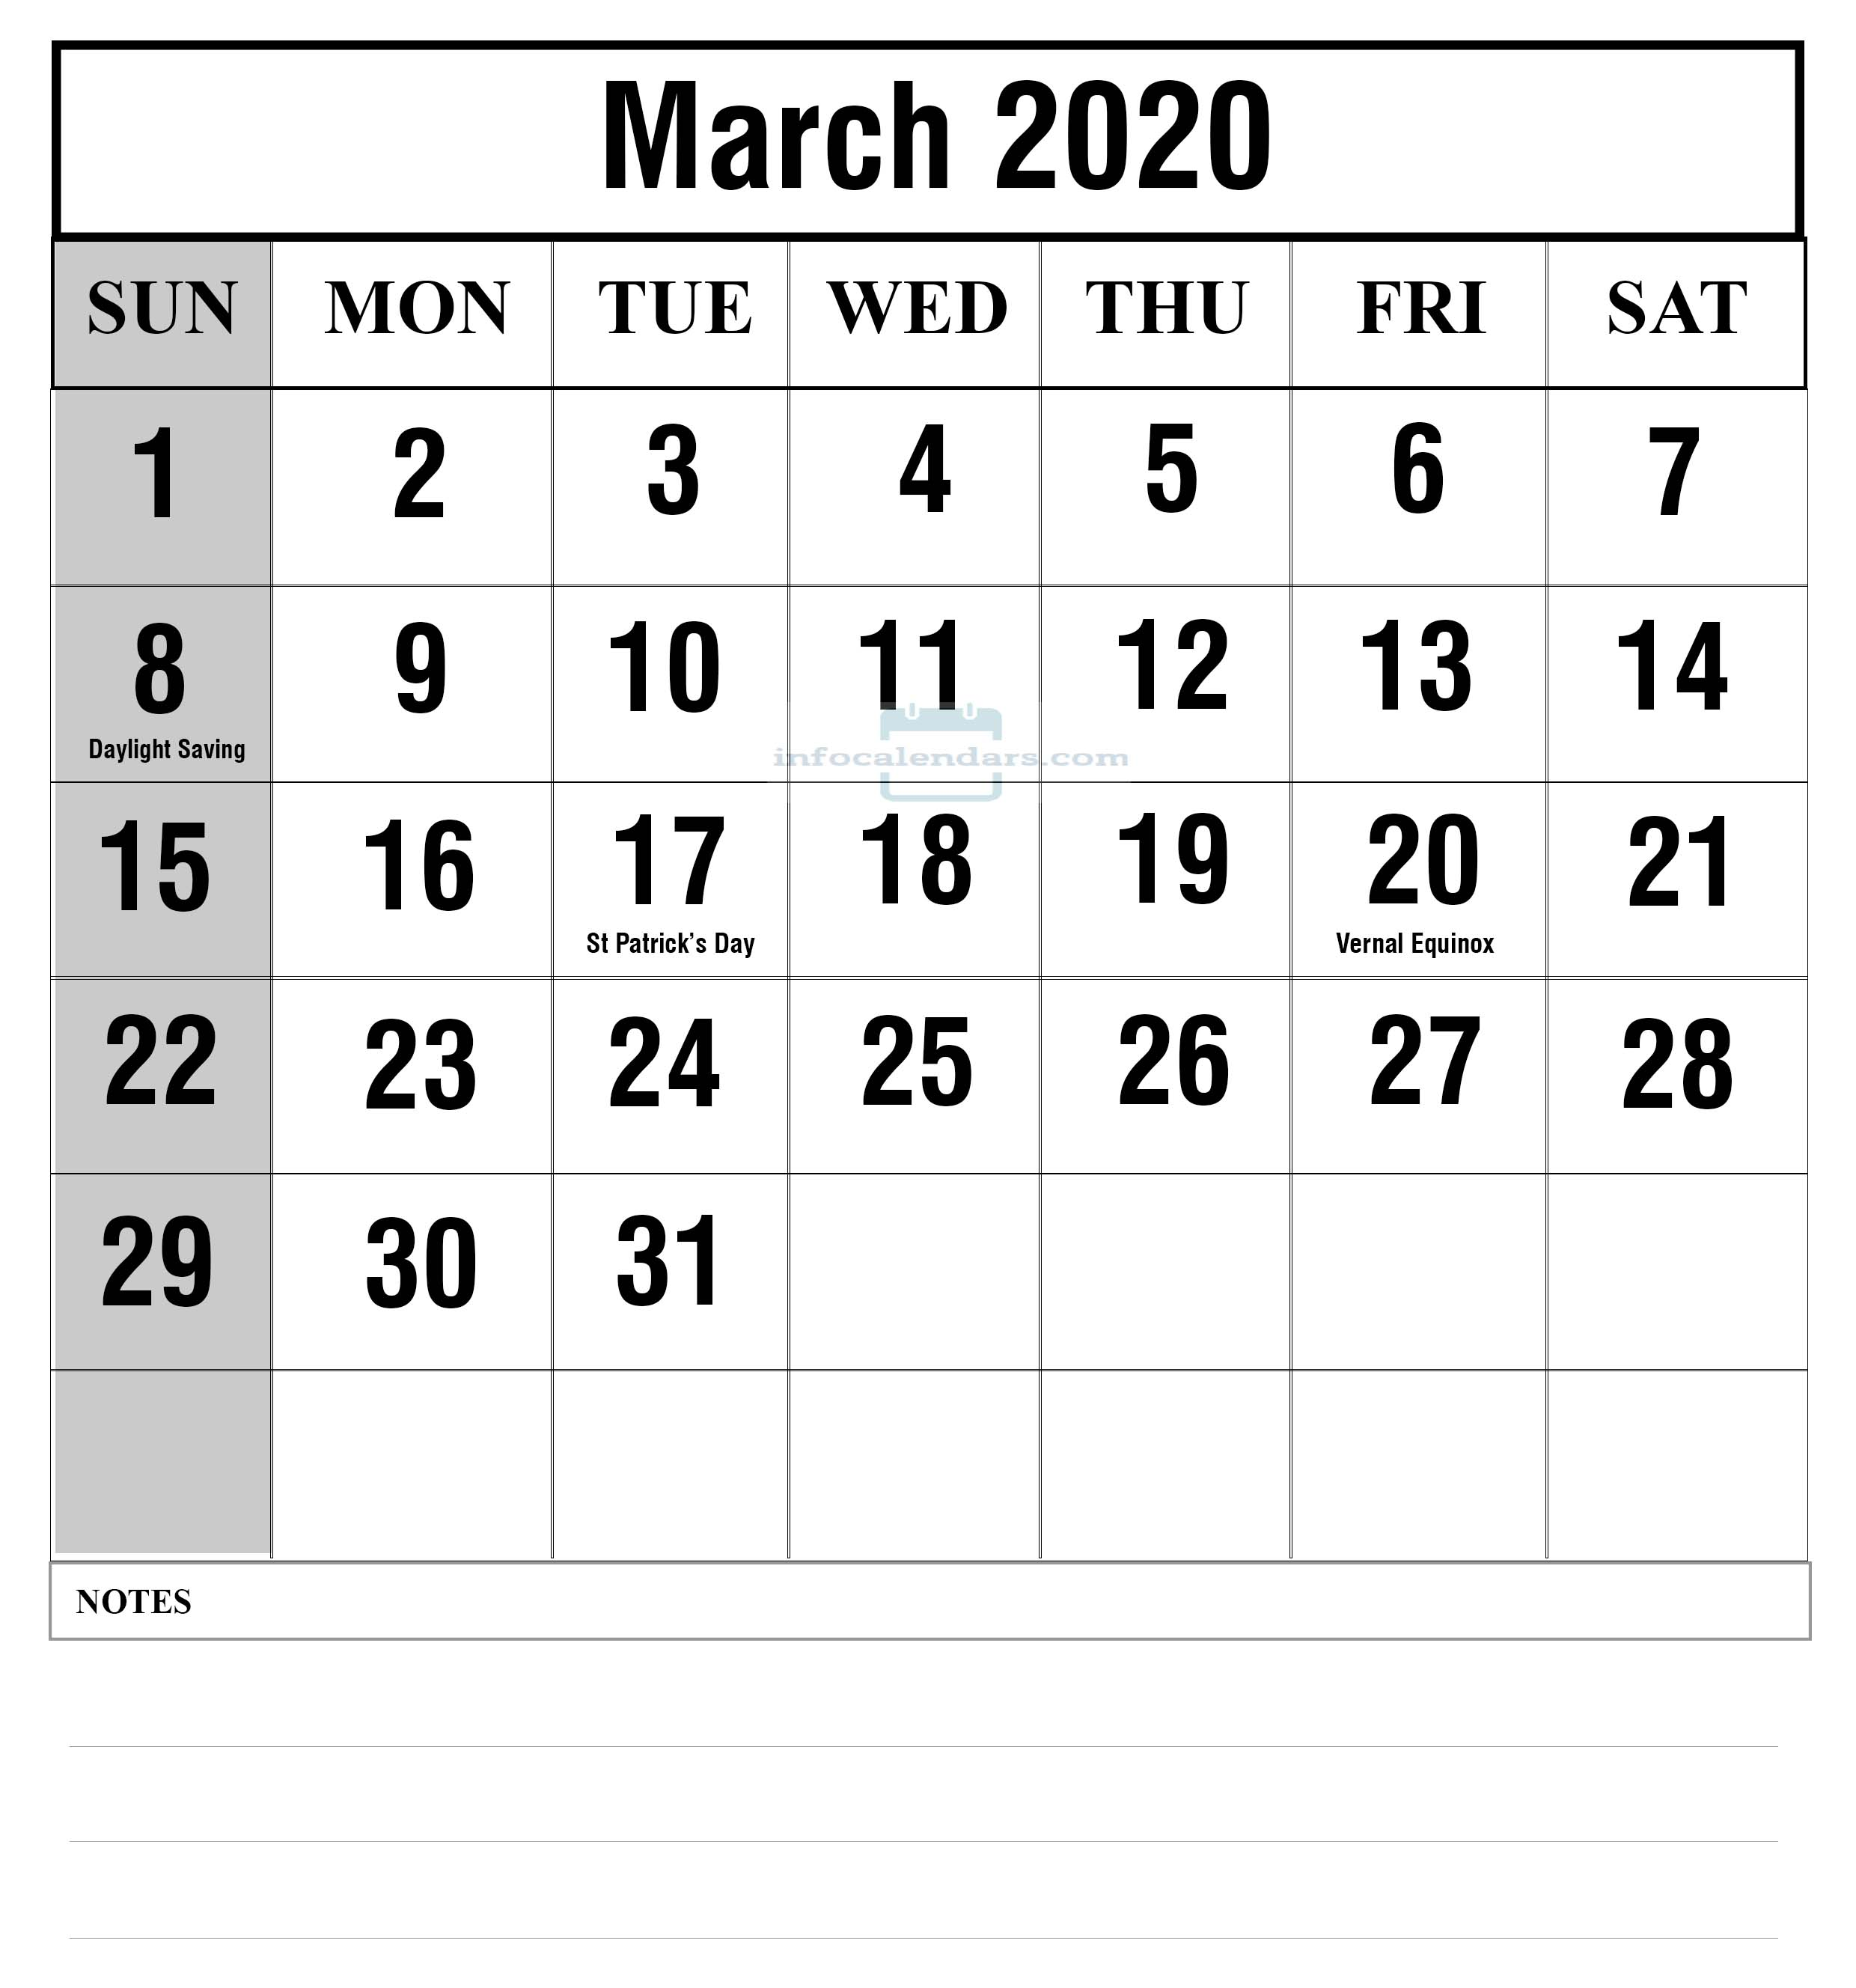 2020 March Calendar With Holidays